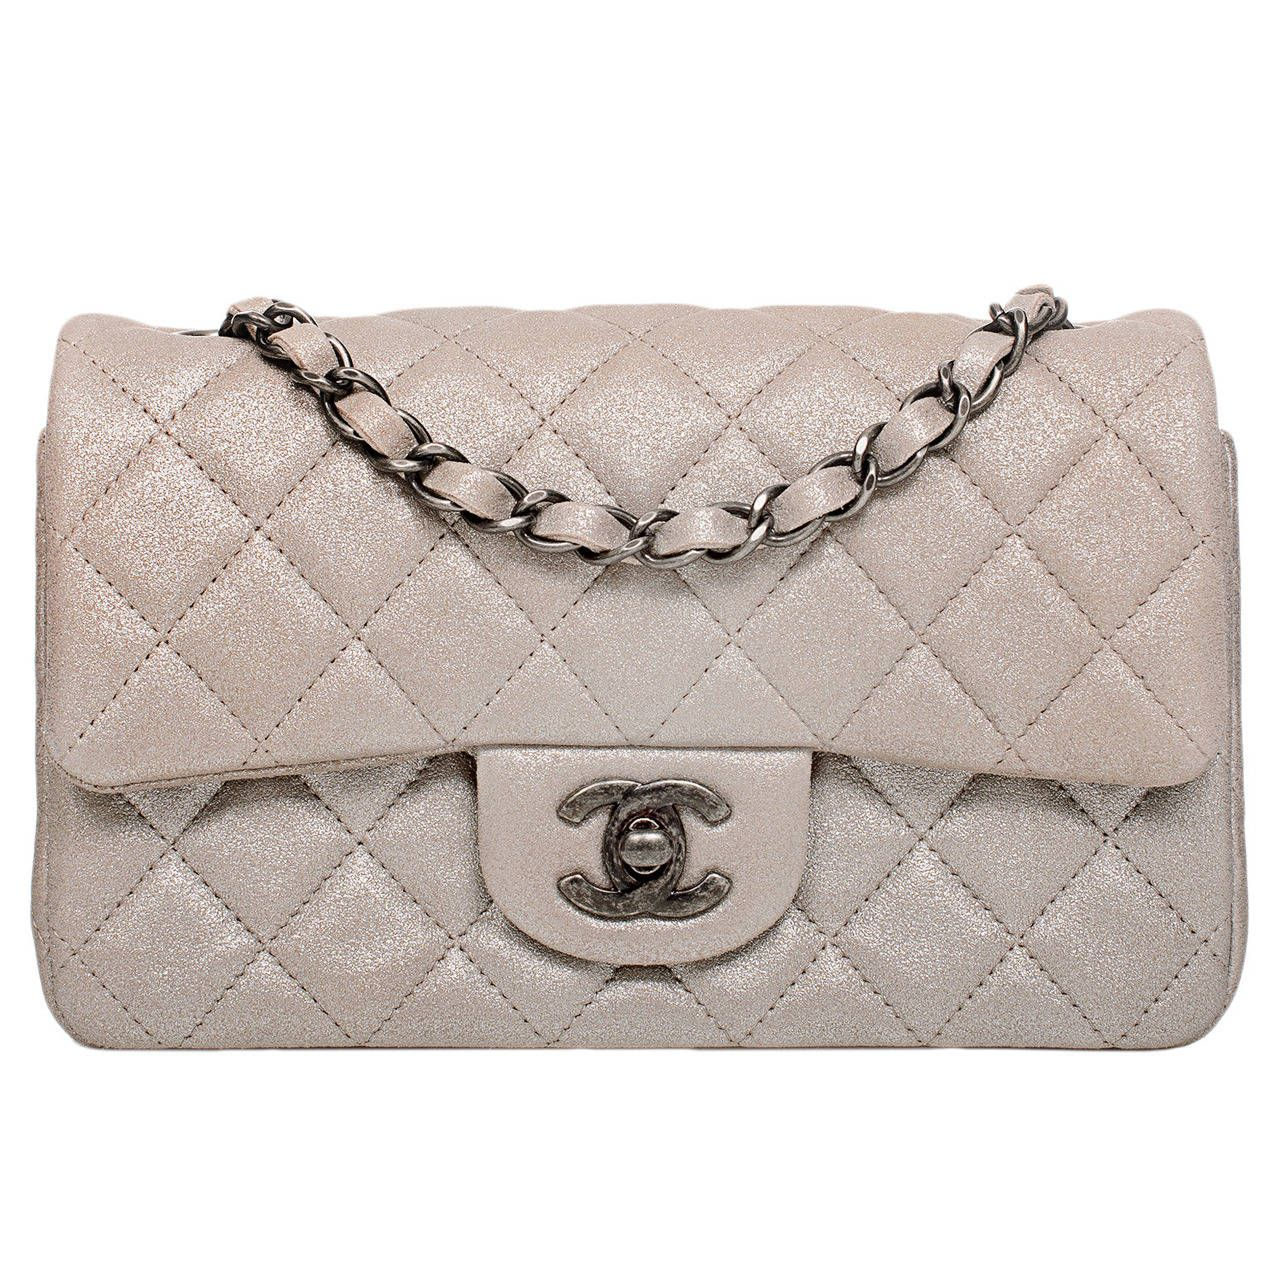 e020244e9c58 Chanel Champagne Gold Quilted Small Classic 2.55 Flap Bag